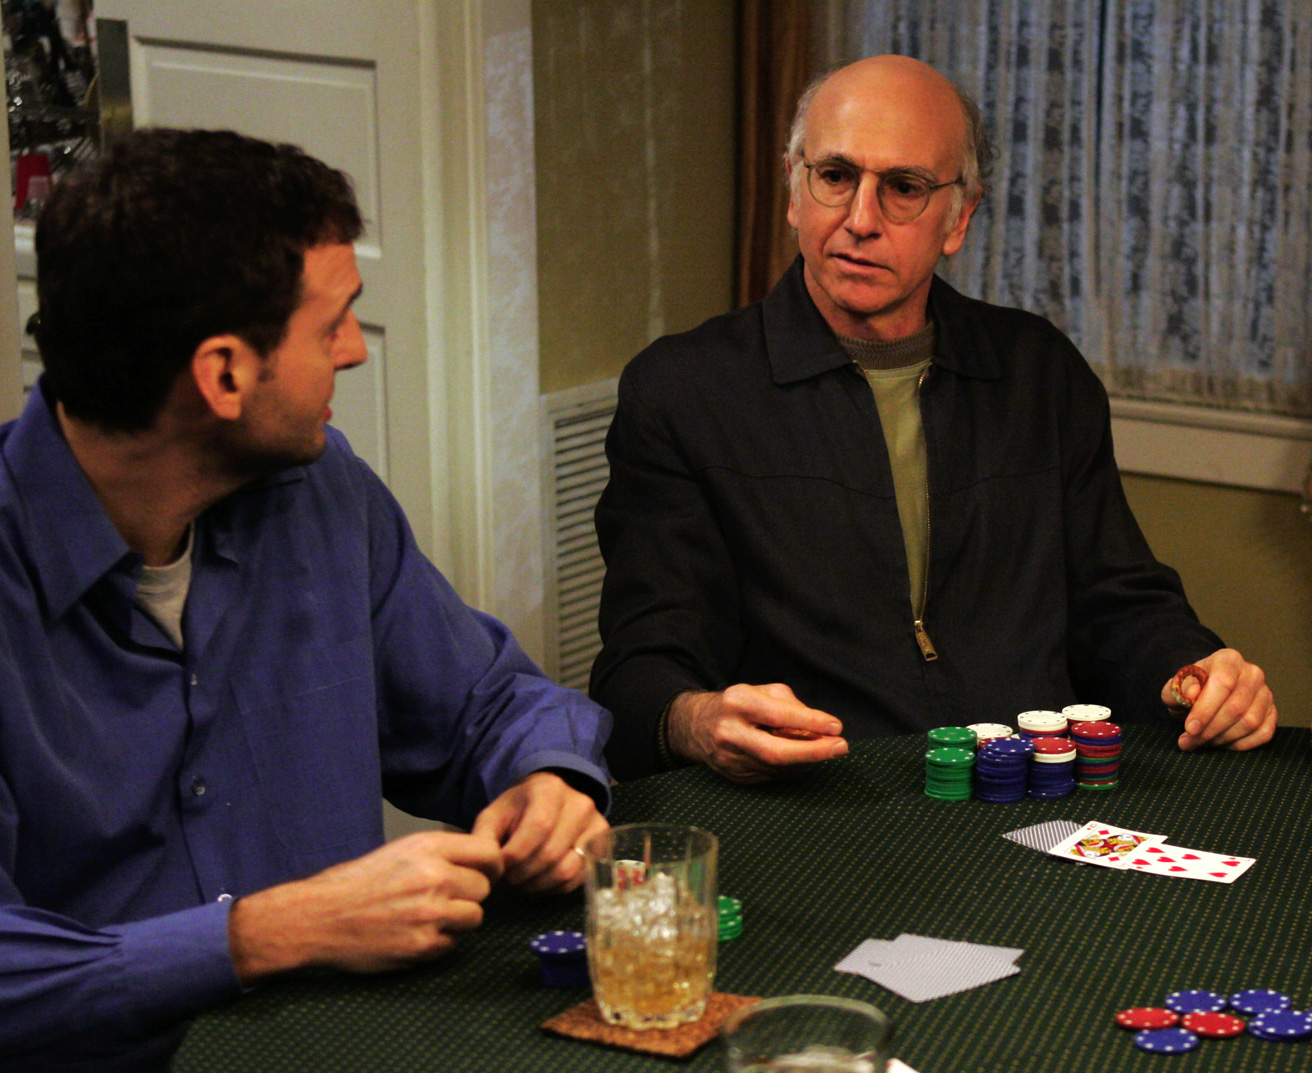 Larry David playing poker